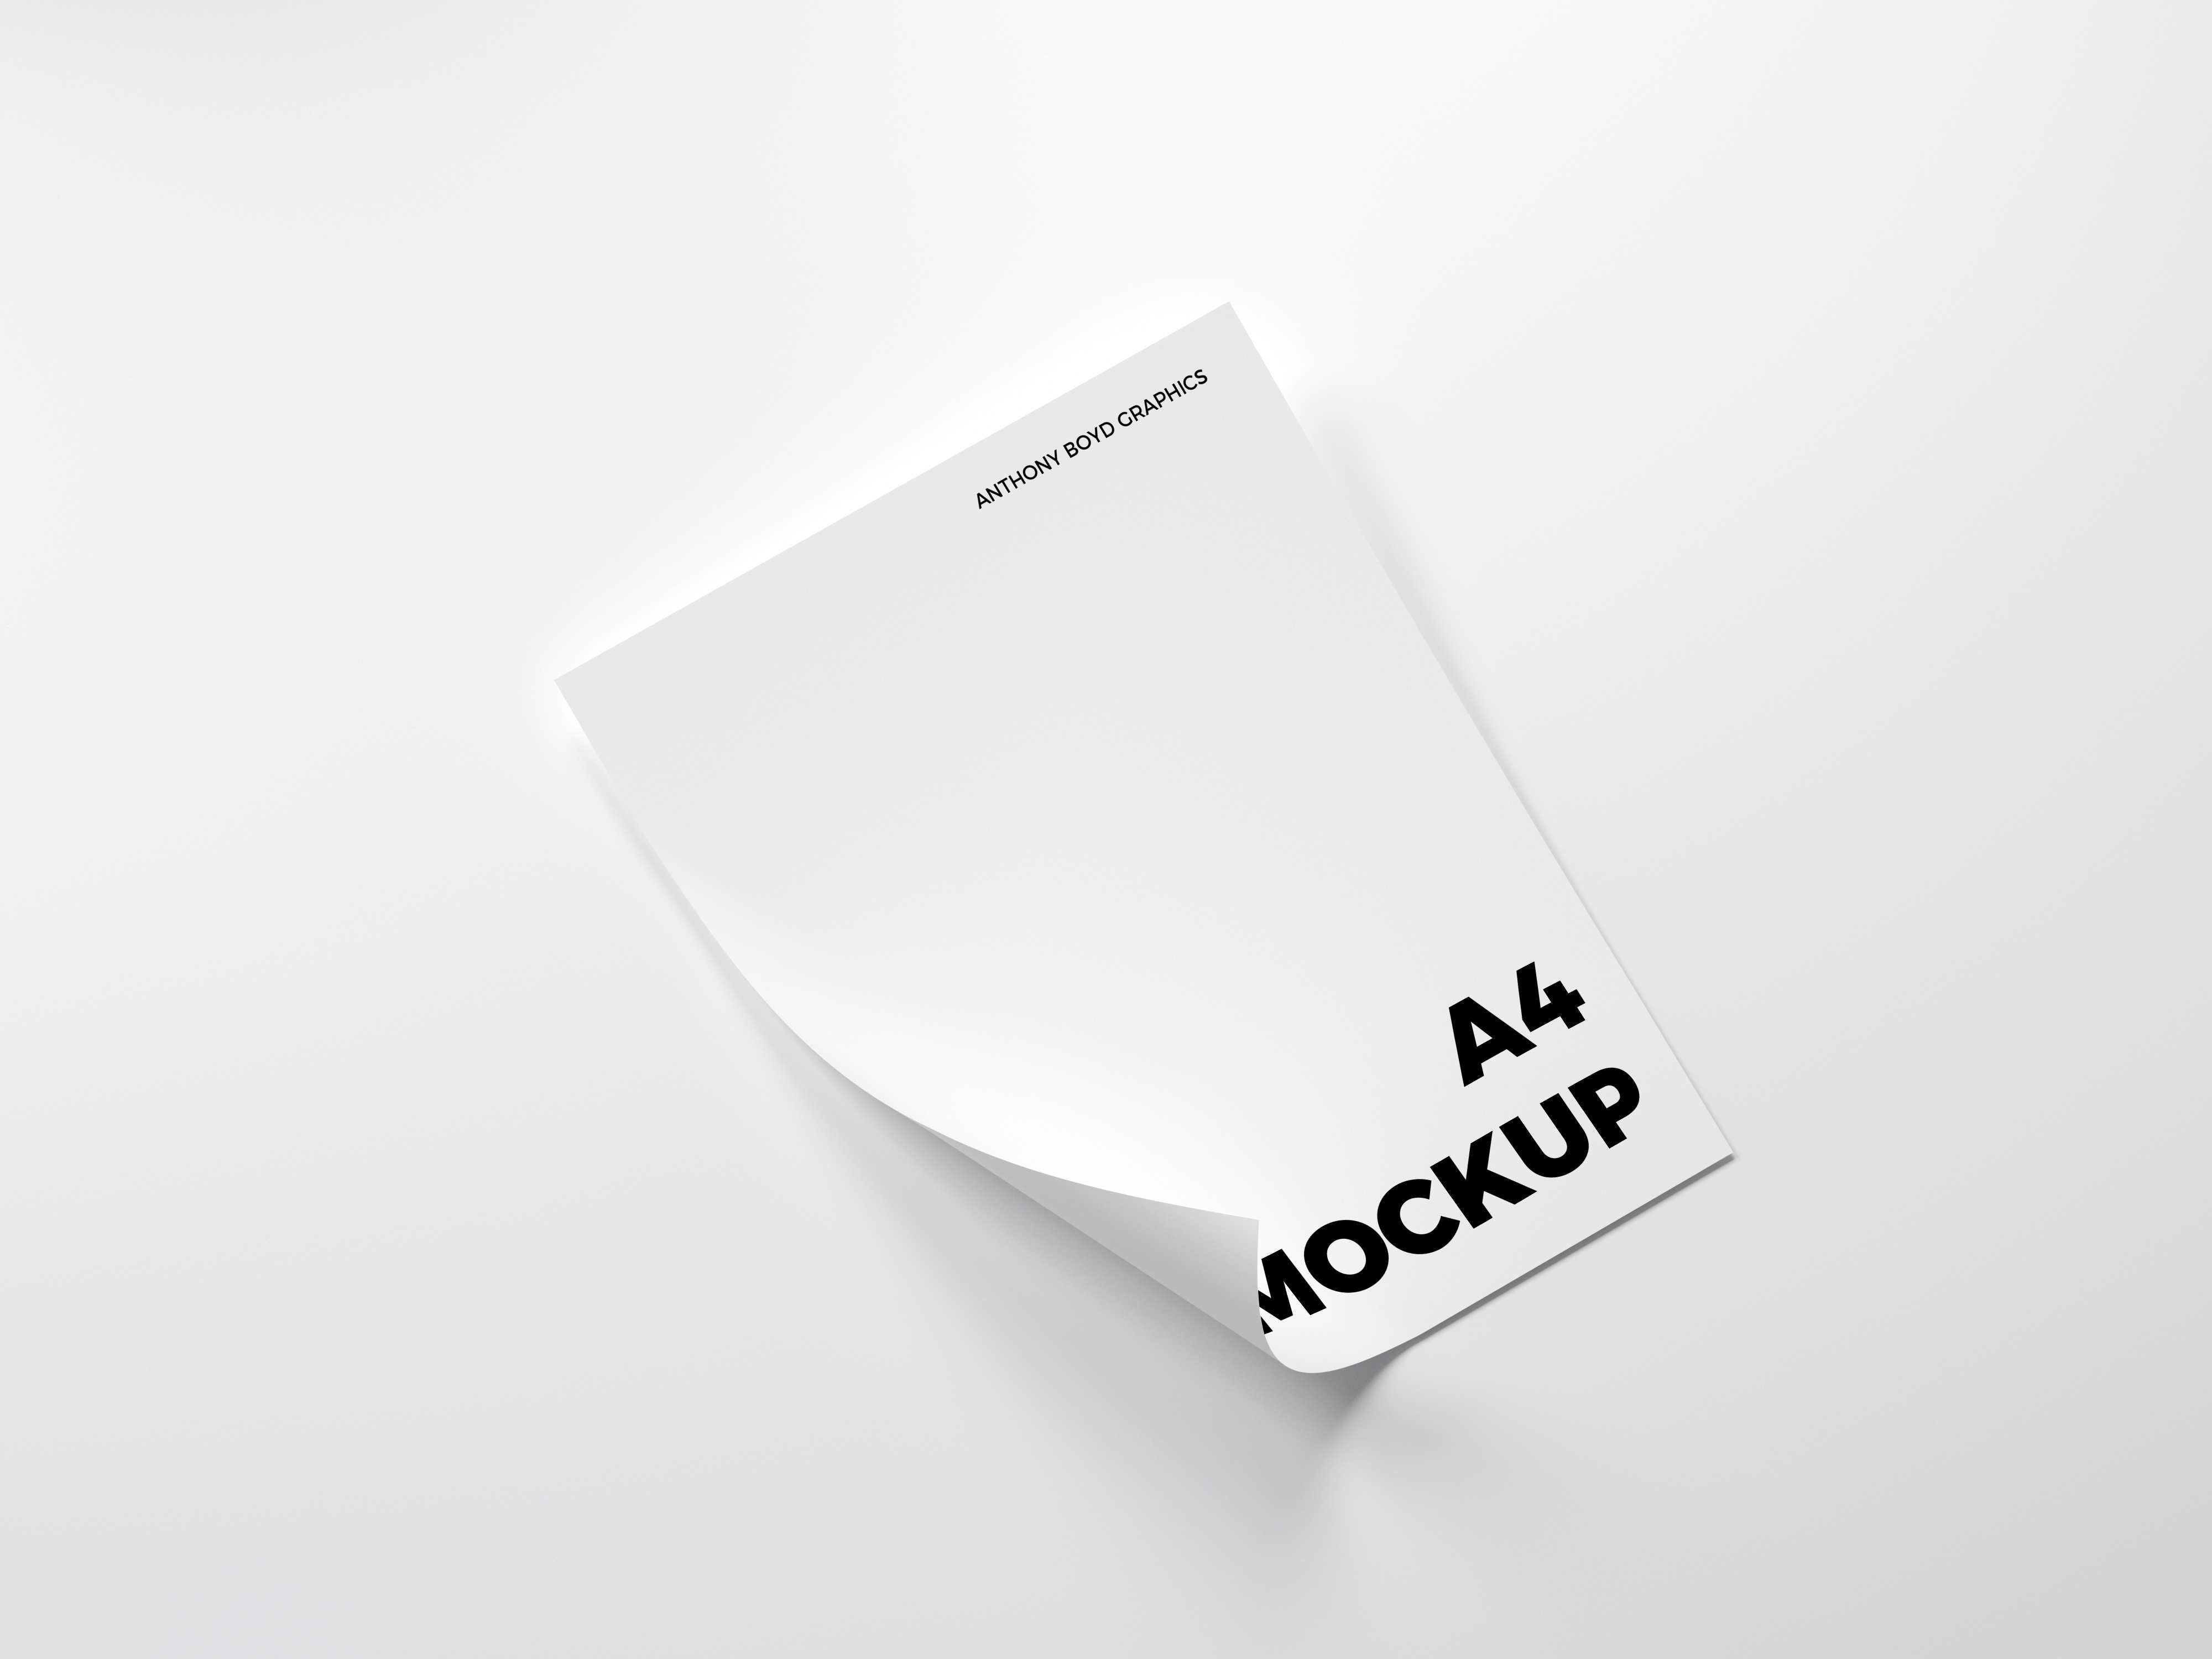 Folded a4 paper mockup   anthony boyd graphics